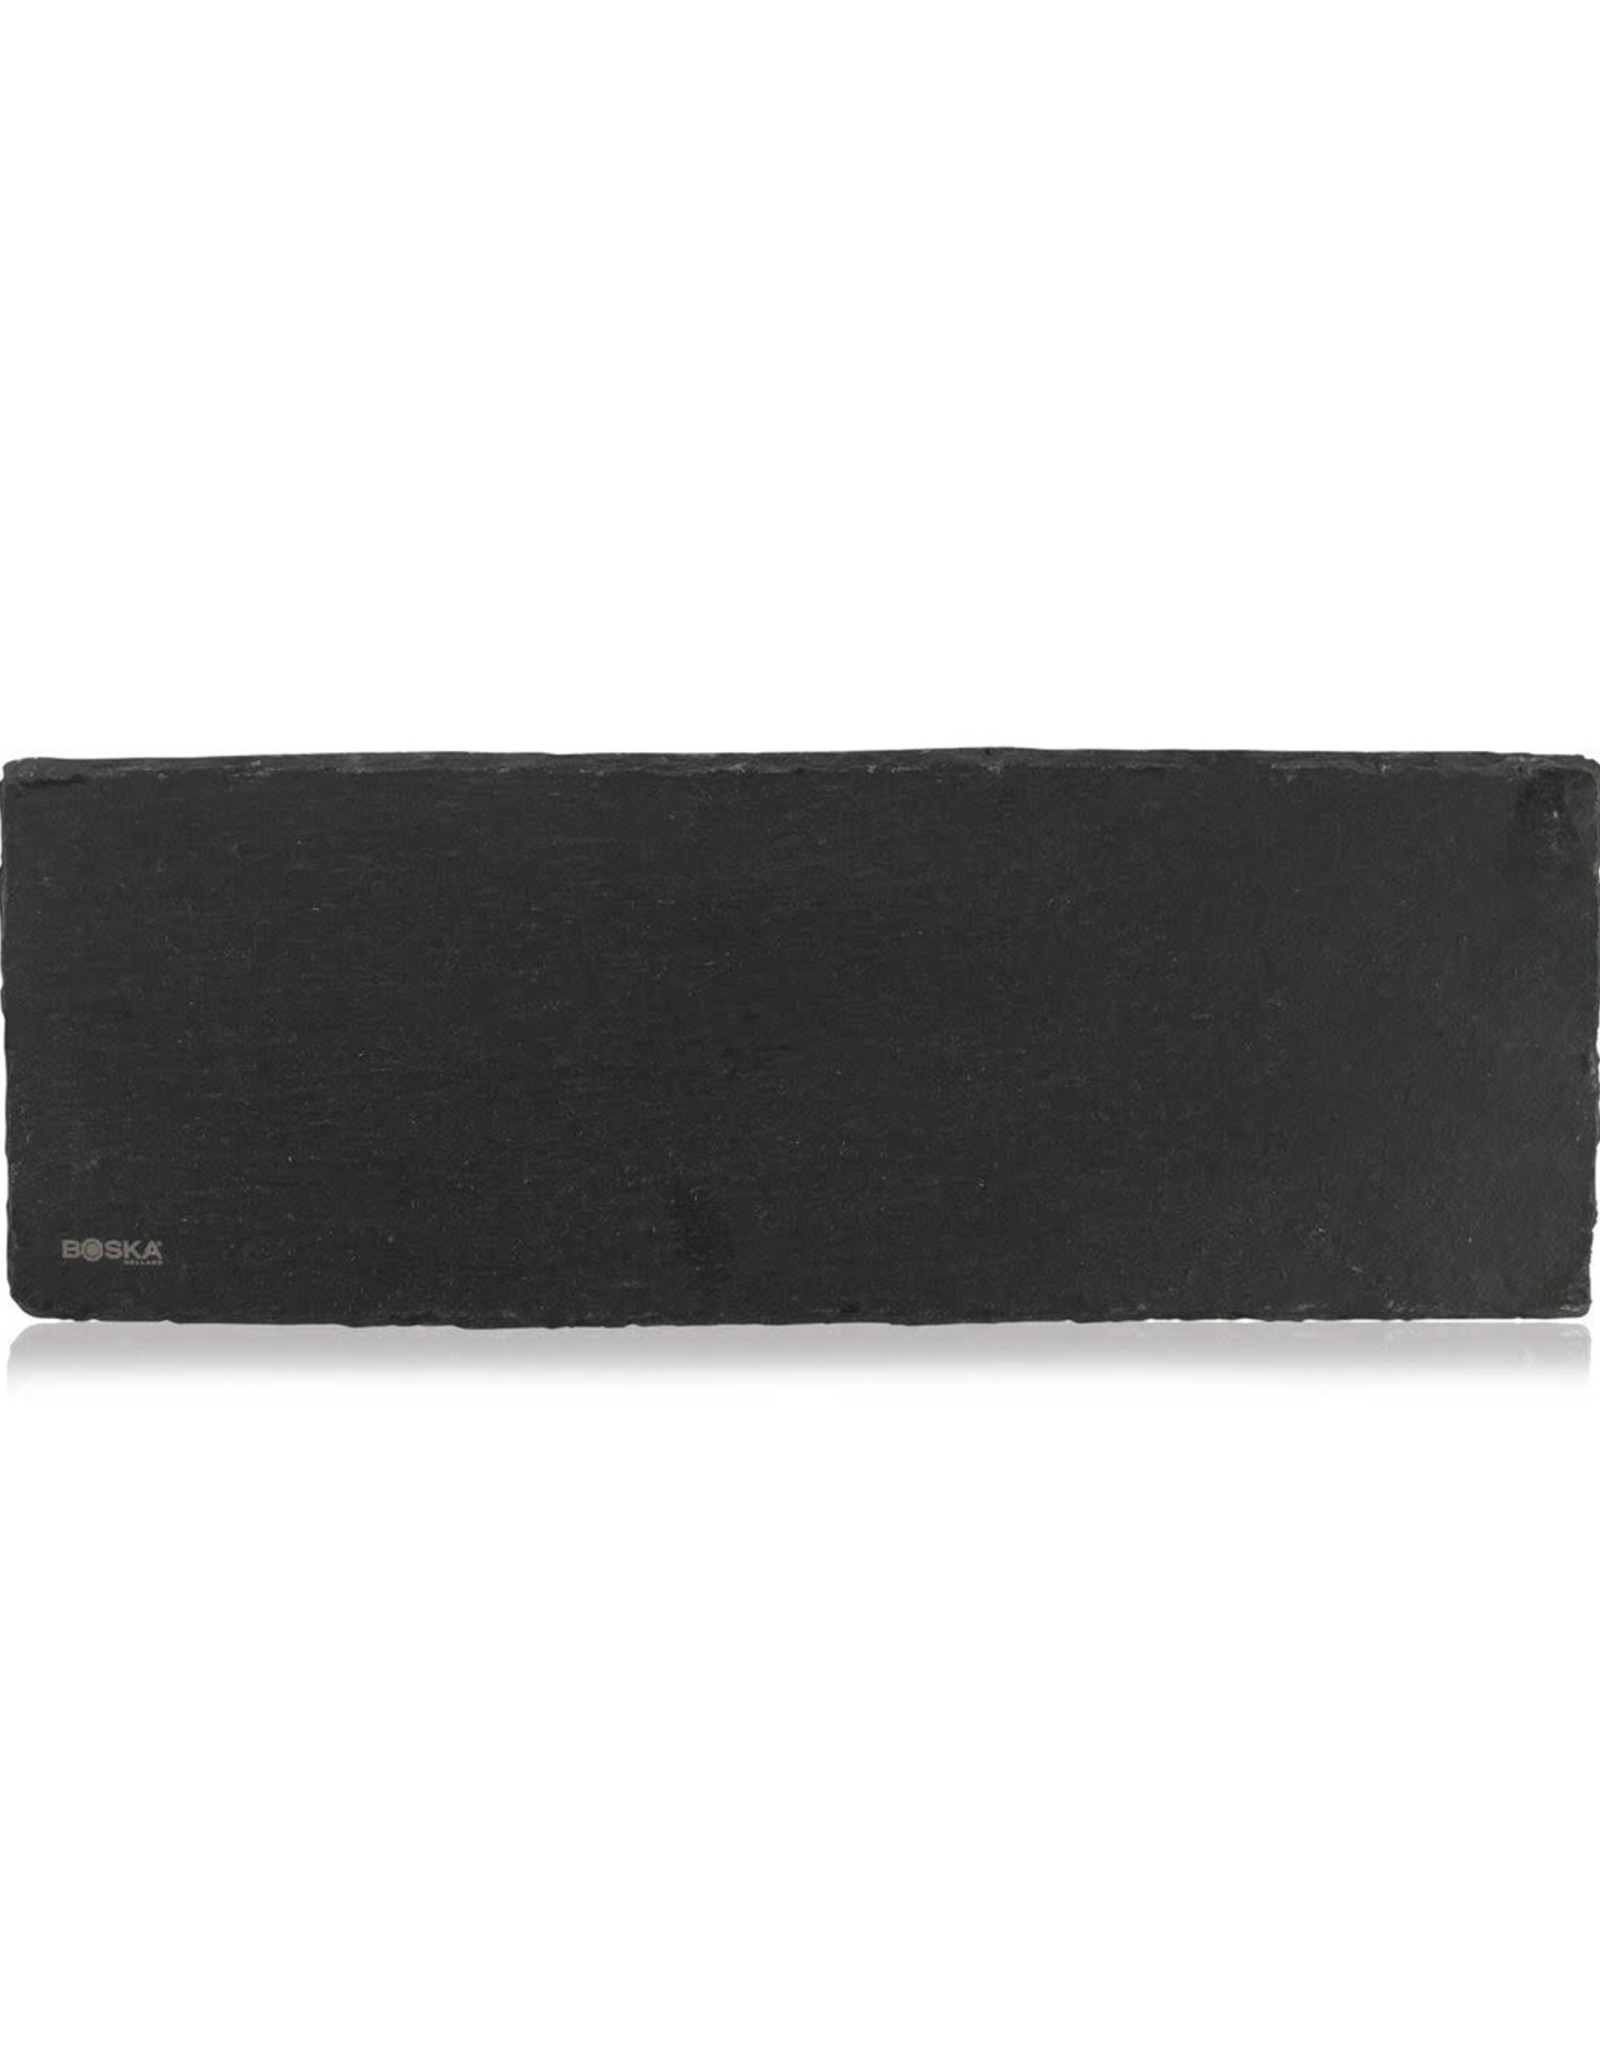 Boska Holland Boska Holland Serving Board Slate Small